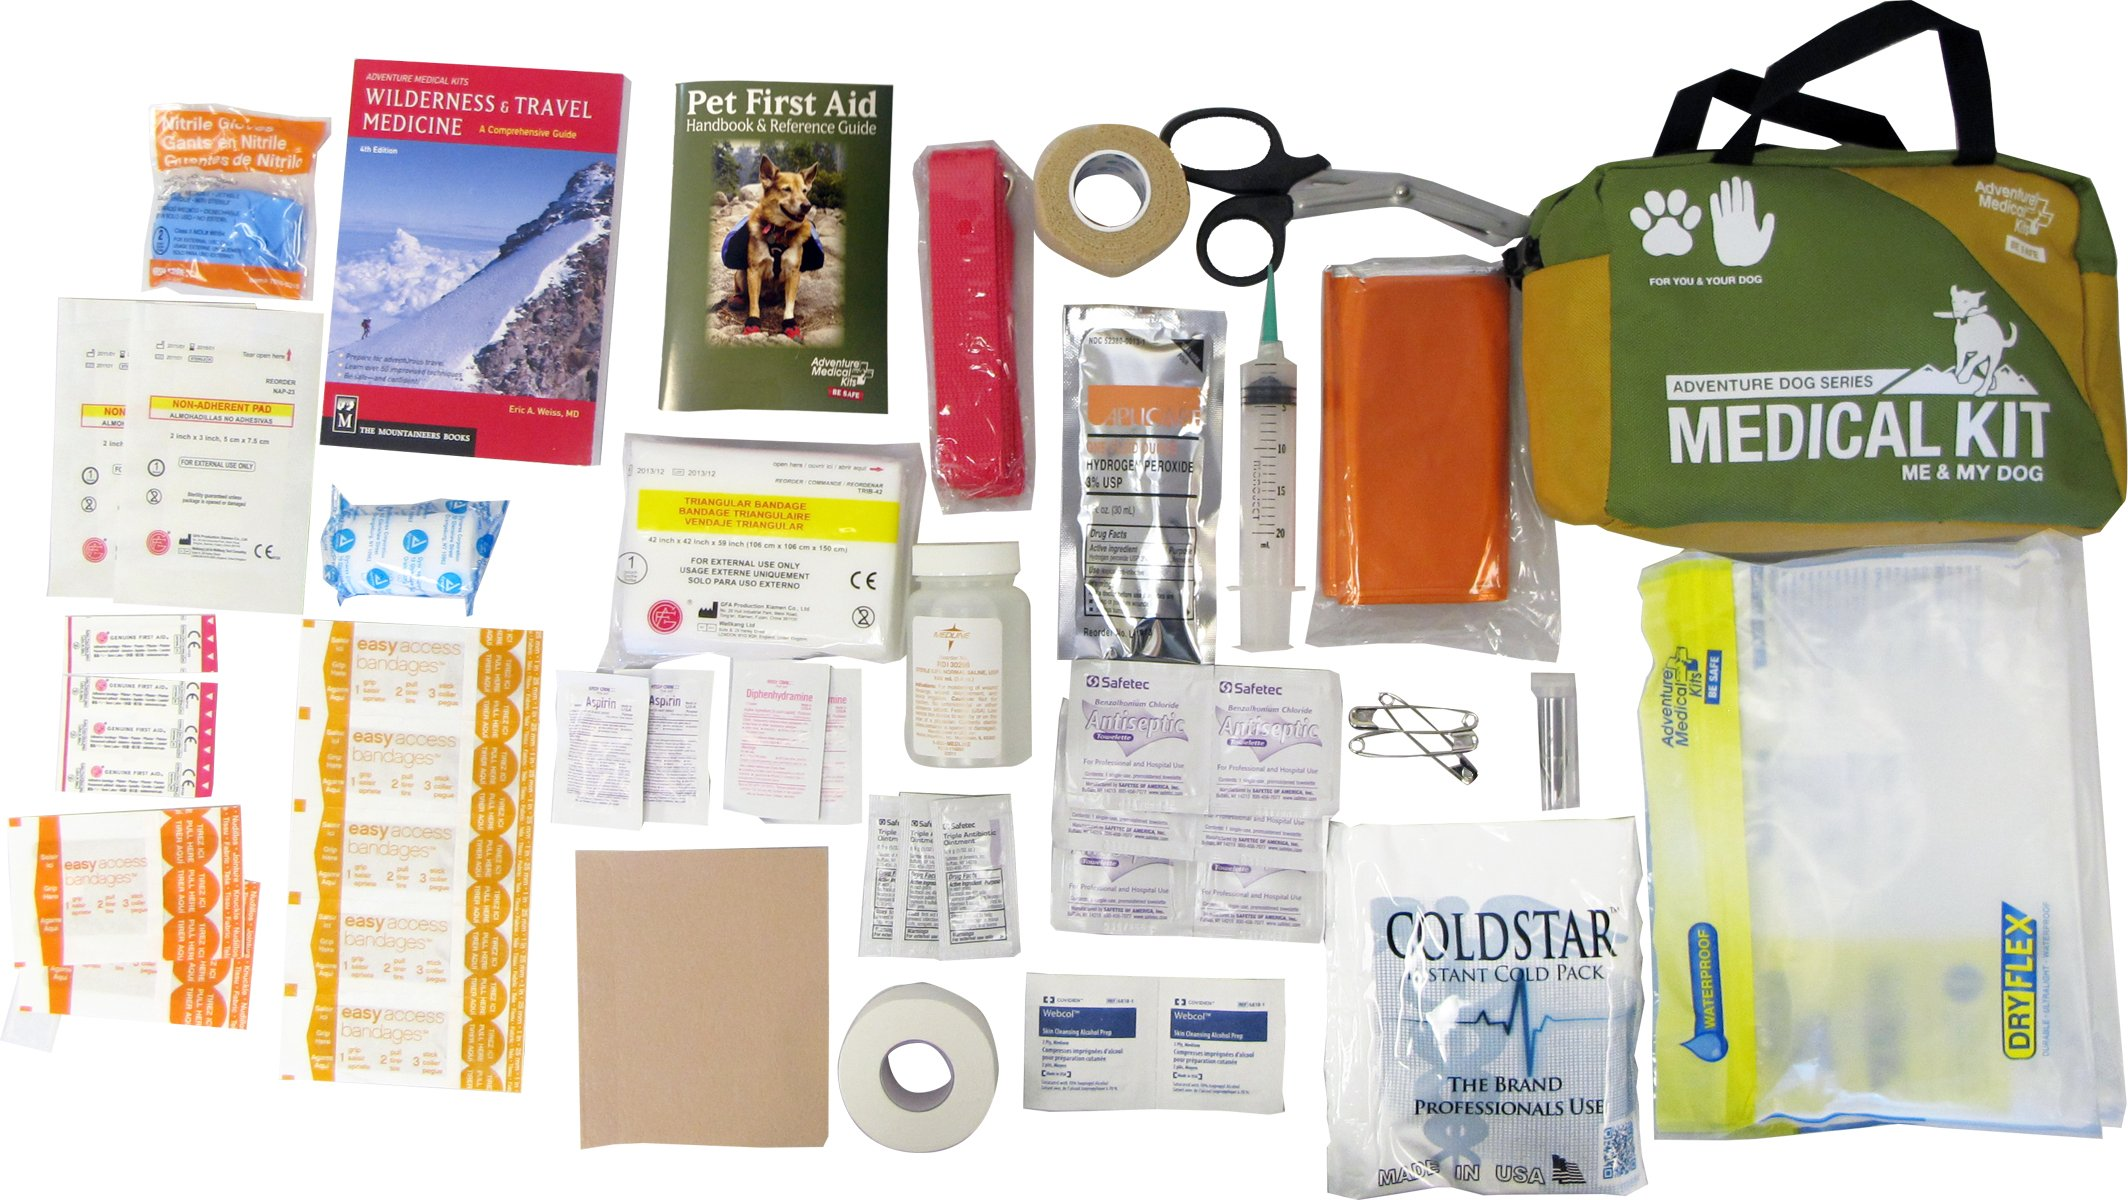 Adventure Medical Kits Adventure Dog Series Me & My Dog Canine First Aid Kit by Adventure Medical Kits